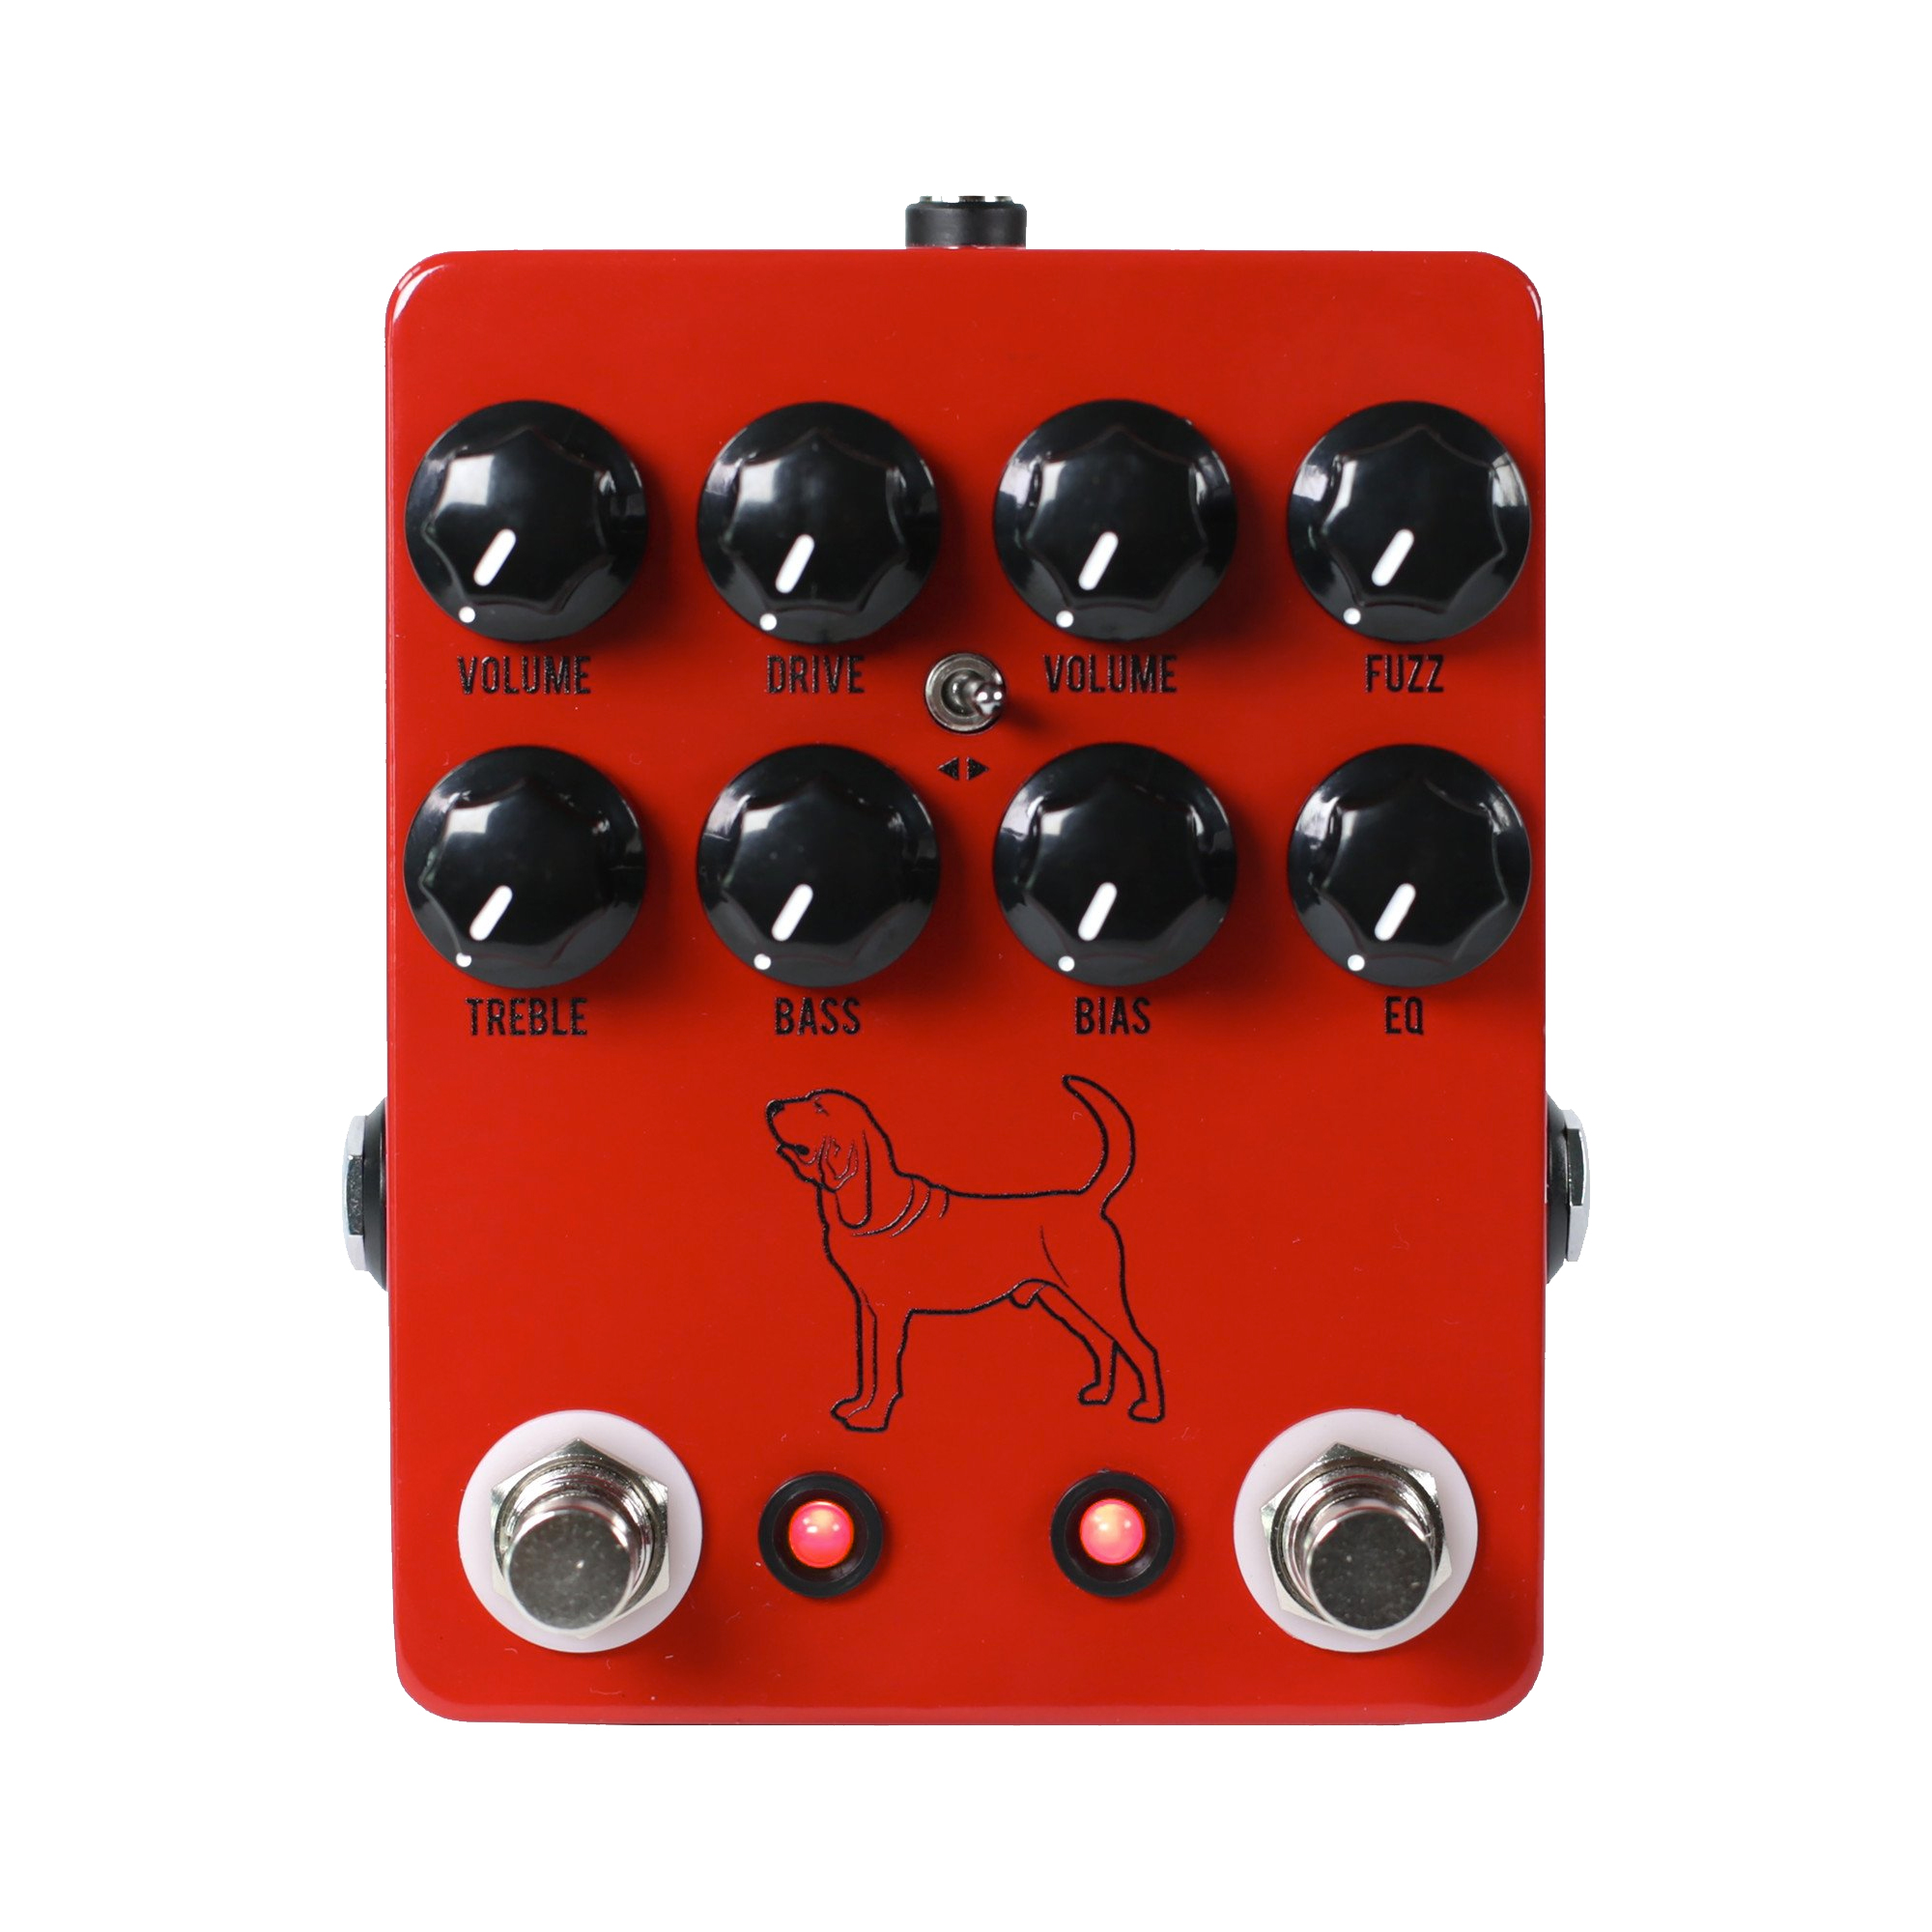 JHS Pedals The Calhoun V2 Mike Campbell Signature Overdrive Pedal by JHS Pedals